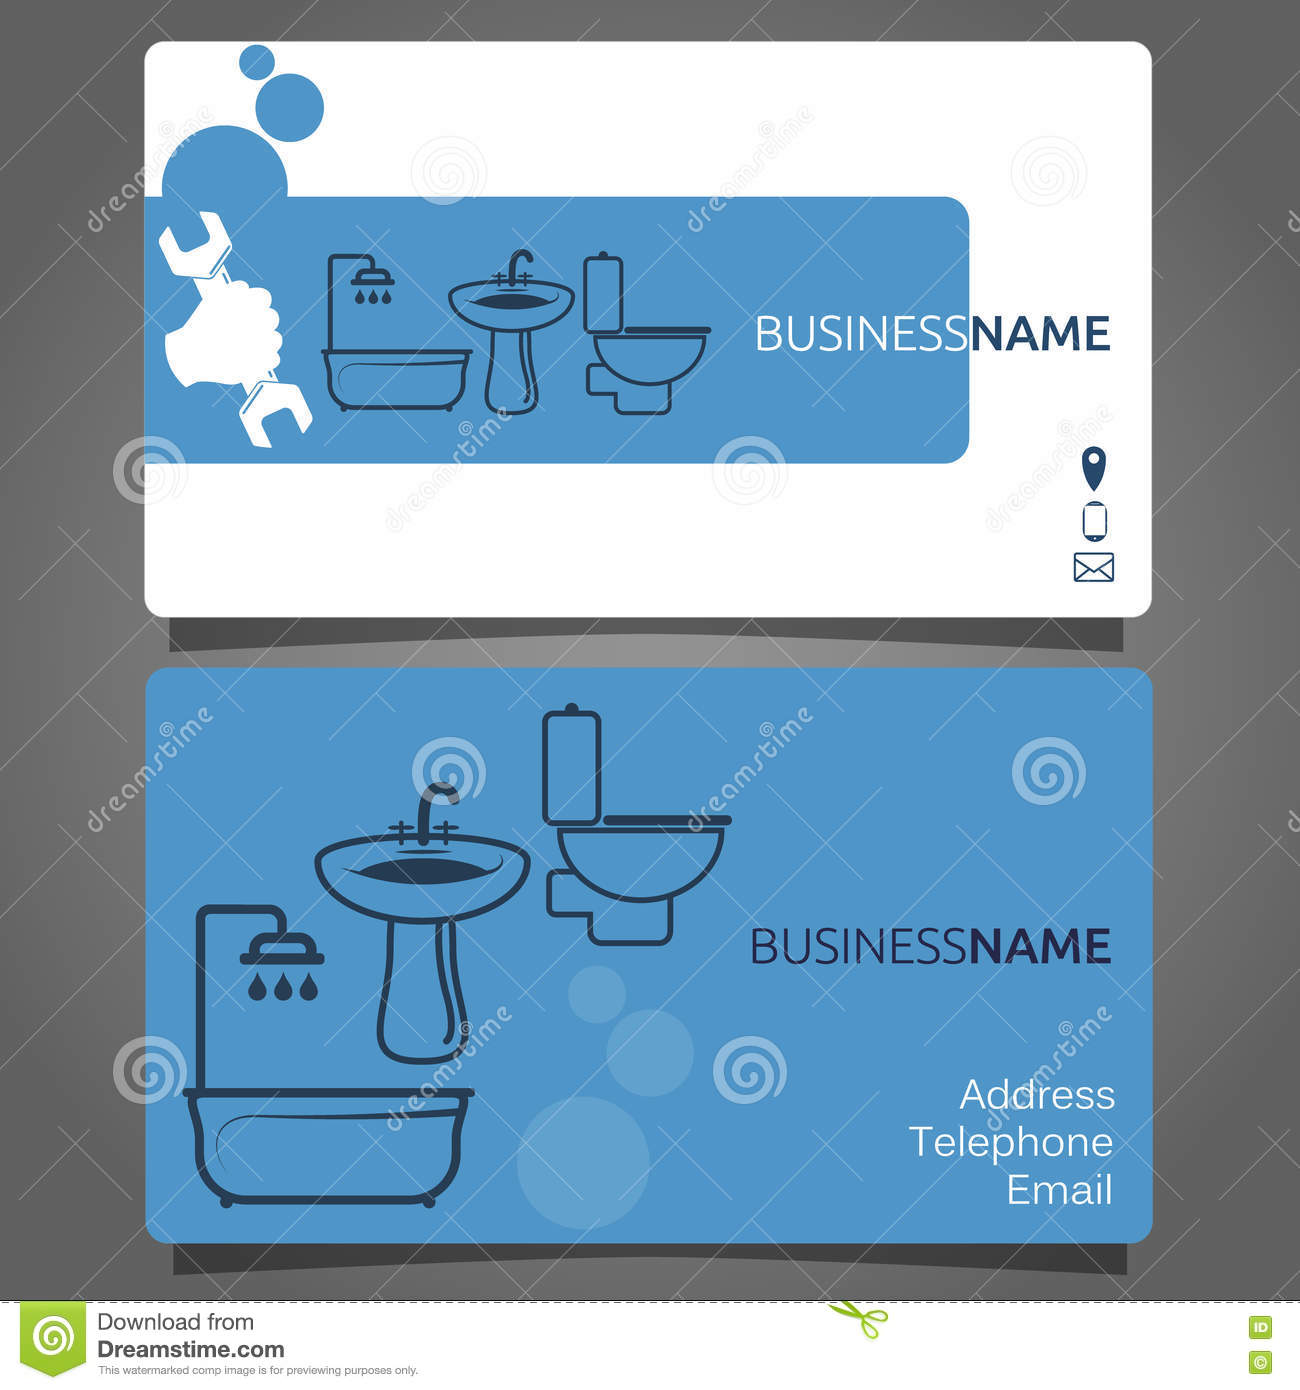 Business card for plumbing services stock vector illustration of download business card for plumbing services stock vector illustration of concept professional 79587840 colourmoves